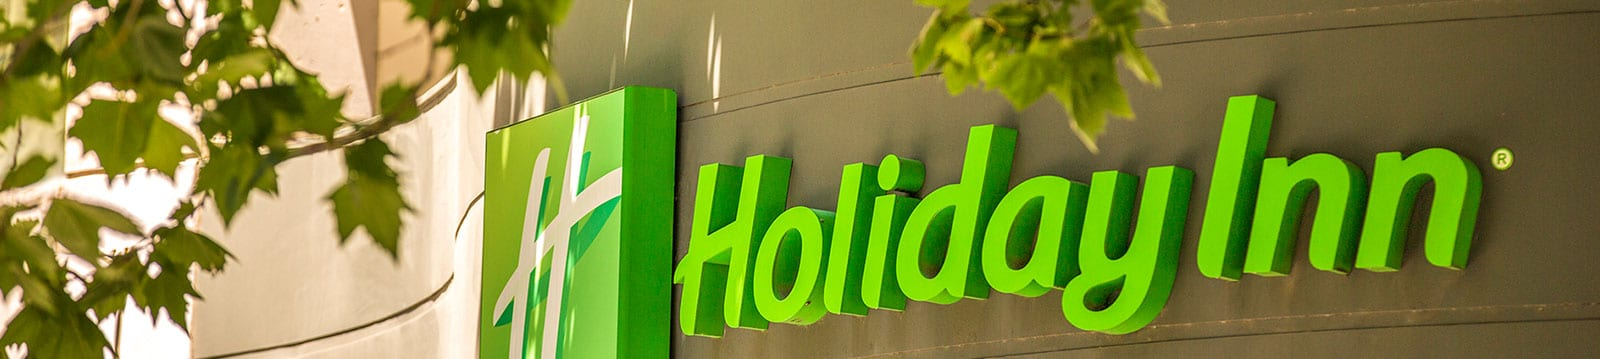 Exterior sign of Holiday Inn Melbourne with tree leaves around it